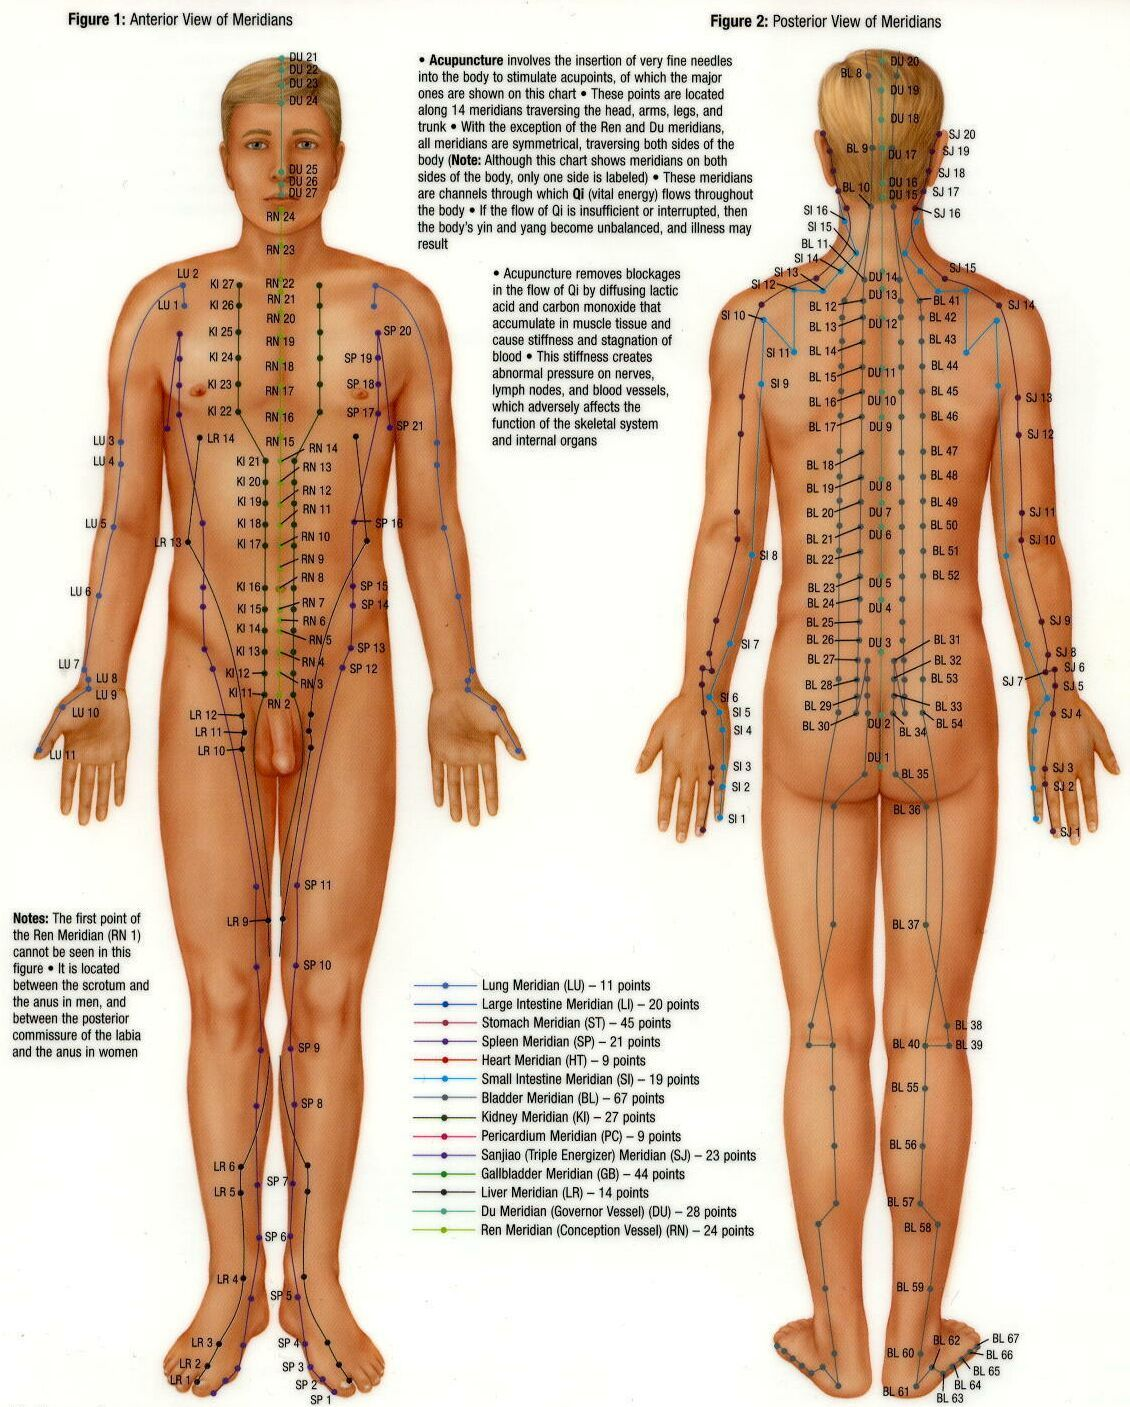 Https S Media Cache Ak0 Pinimg Com Originals 1c A8 19 1ca8192f12db863824014712153c0b08 Jpg Acupuncture Points Acupuncture Points Chart Acupuncture